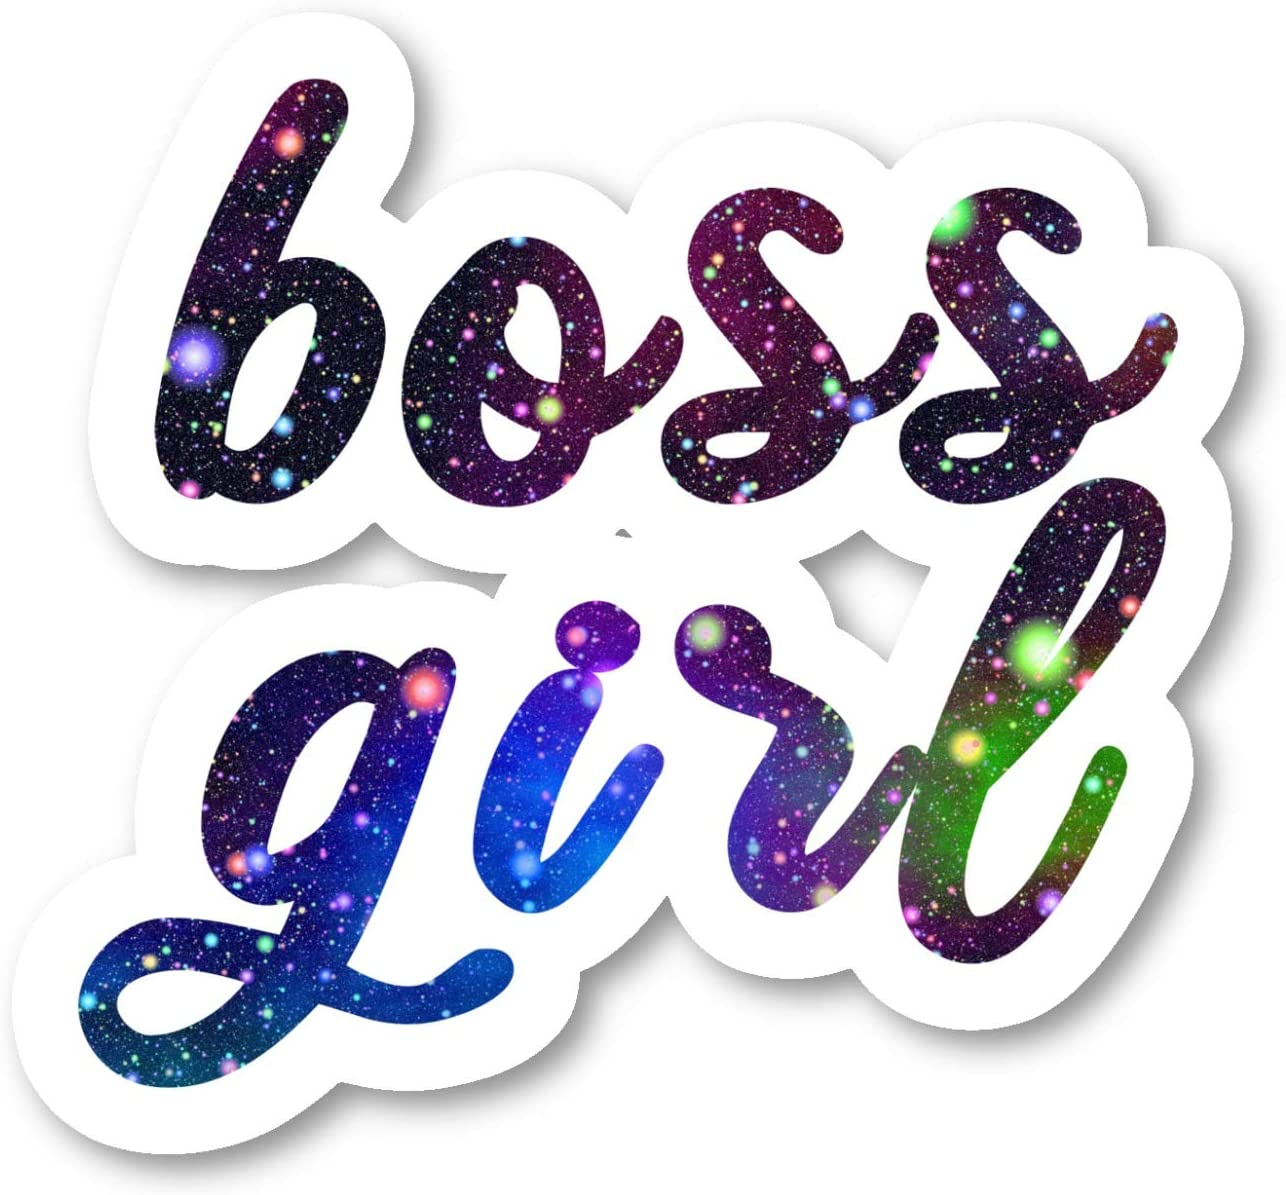 Boss Girl Sticker Inspirational Quotes Galaxy Stickers - Laptop Stickers - 2.5 Inches Vinyl Decal - Laptop, Phone, Tablet Vinyl Decal Sticker S211126